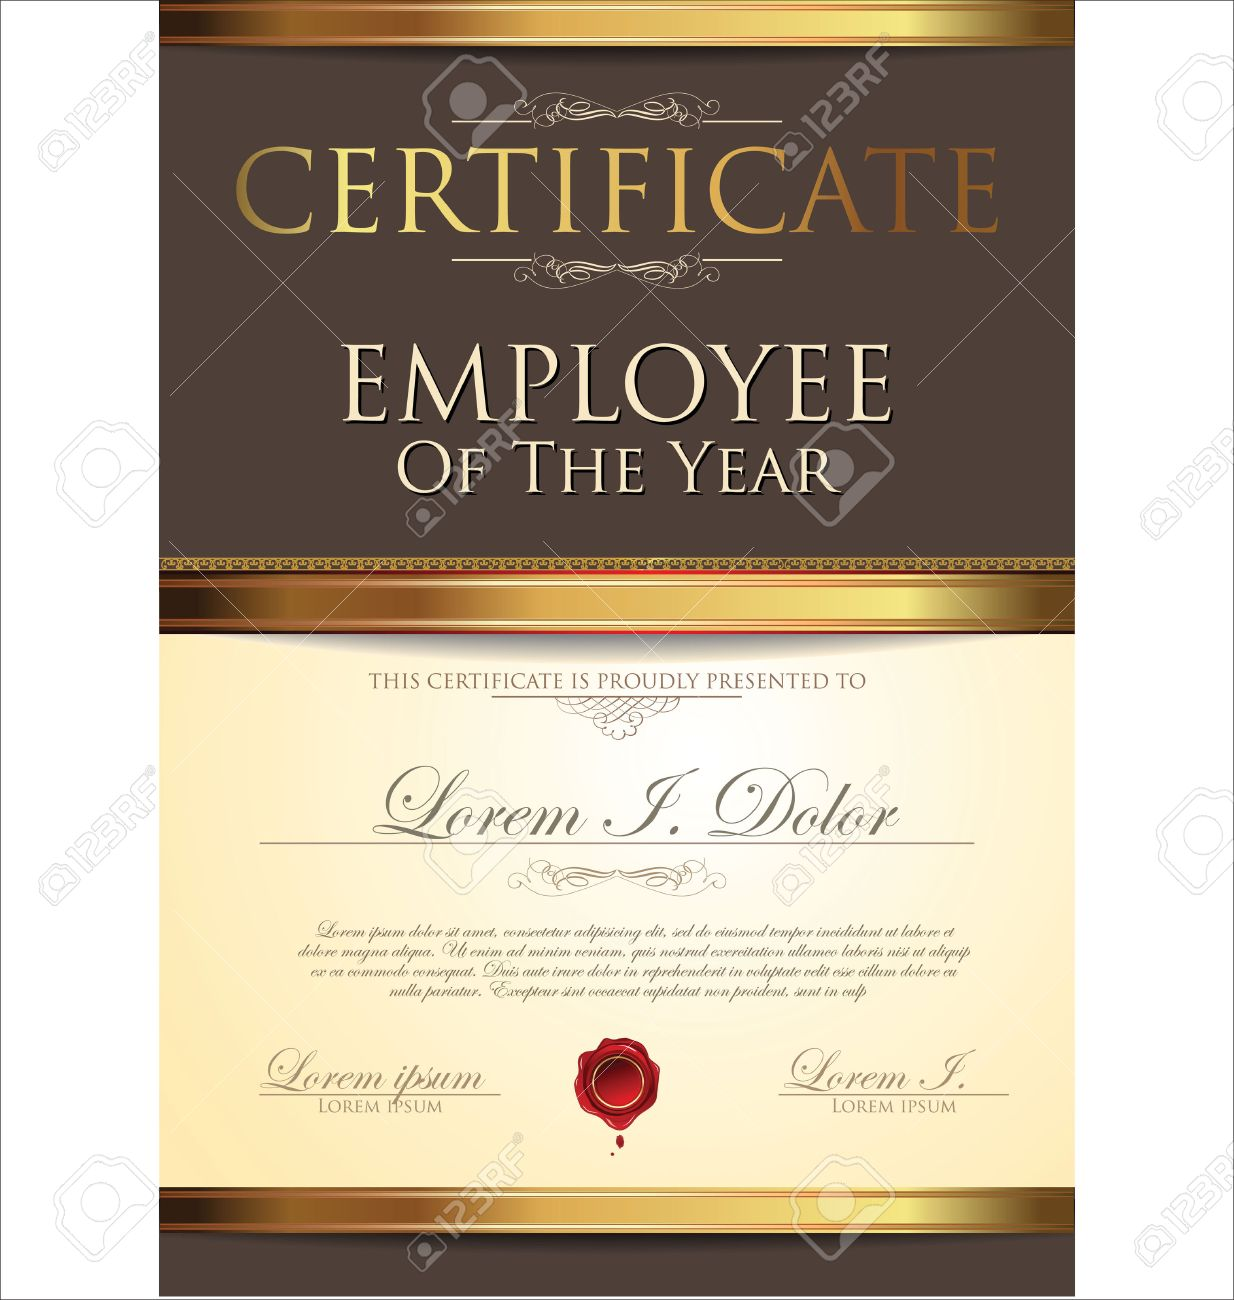 Certificate Template, Employee Of The Year Royalty Free Cliparts ...